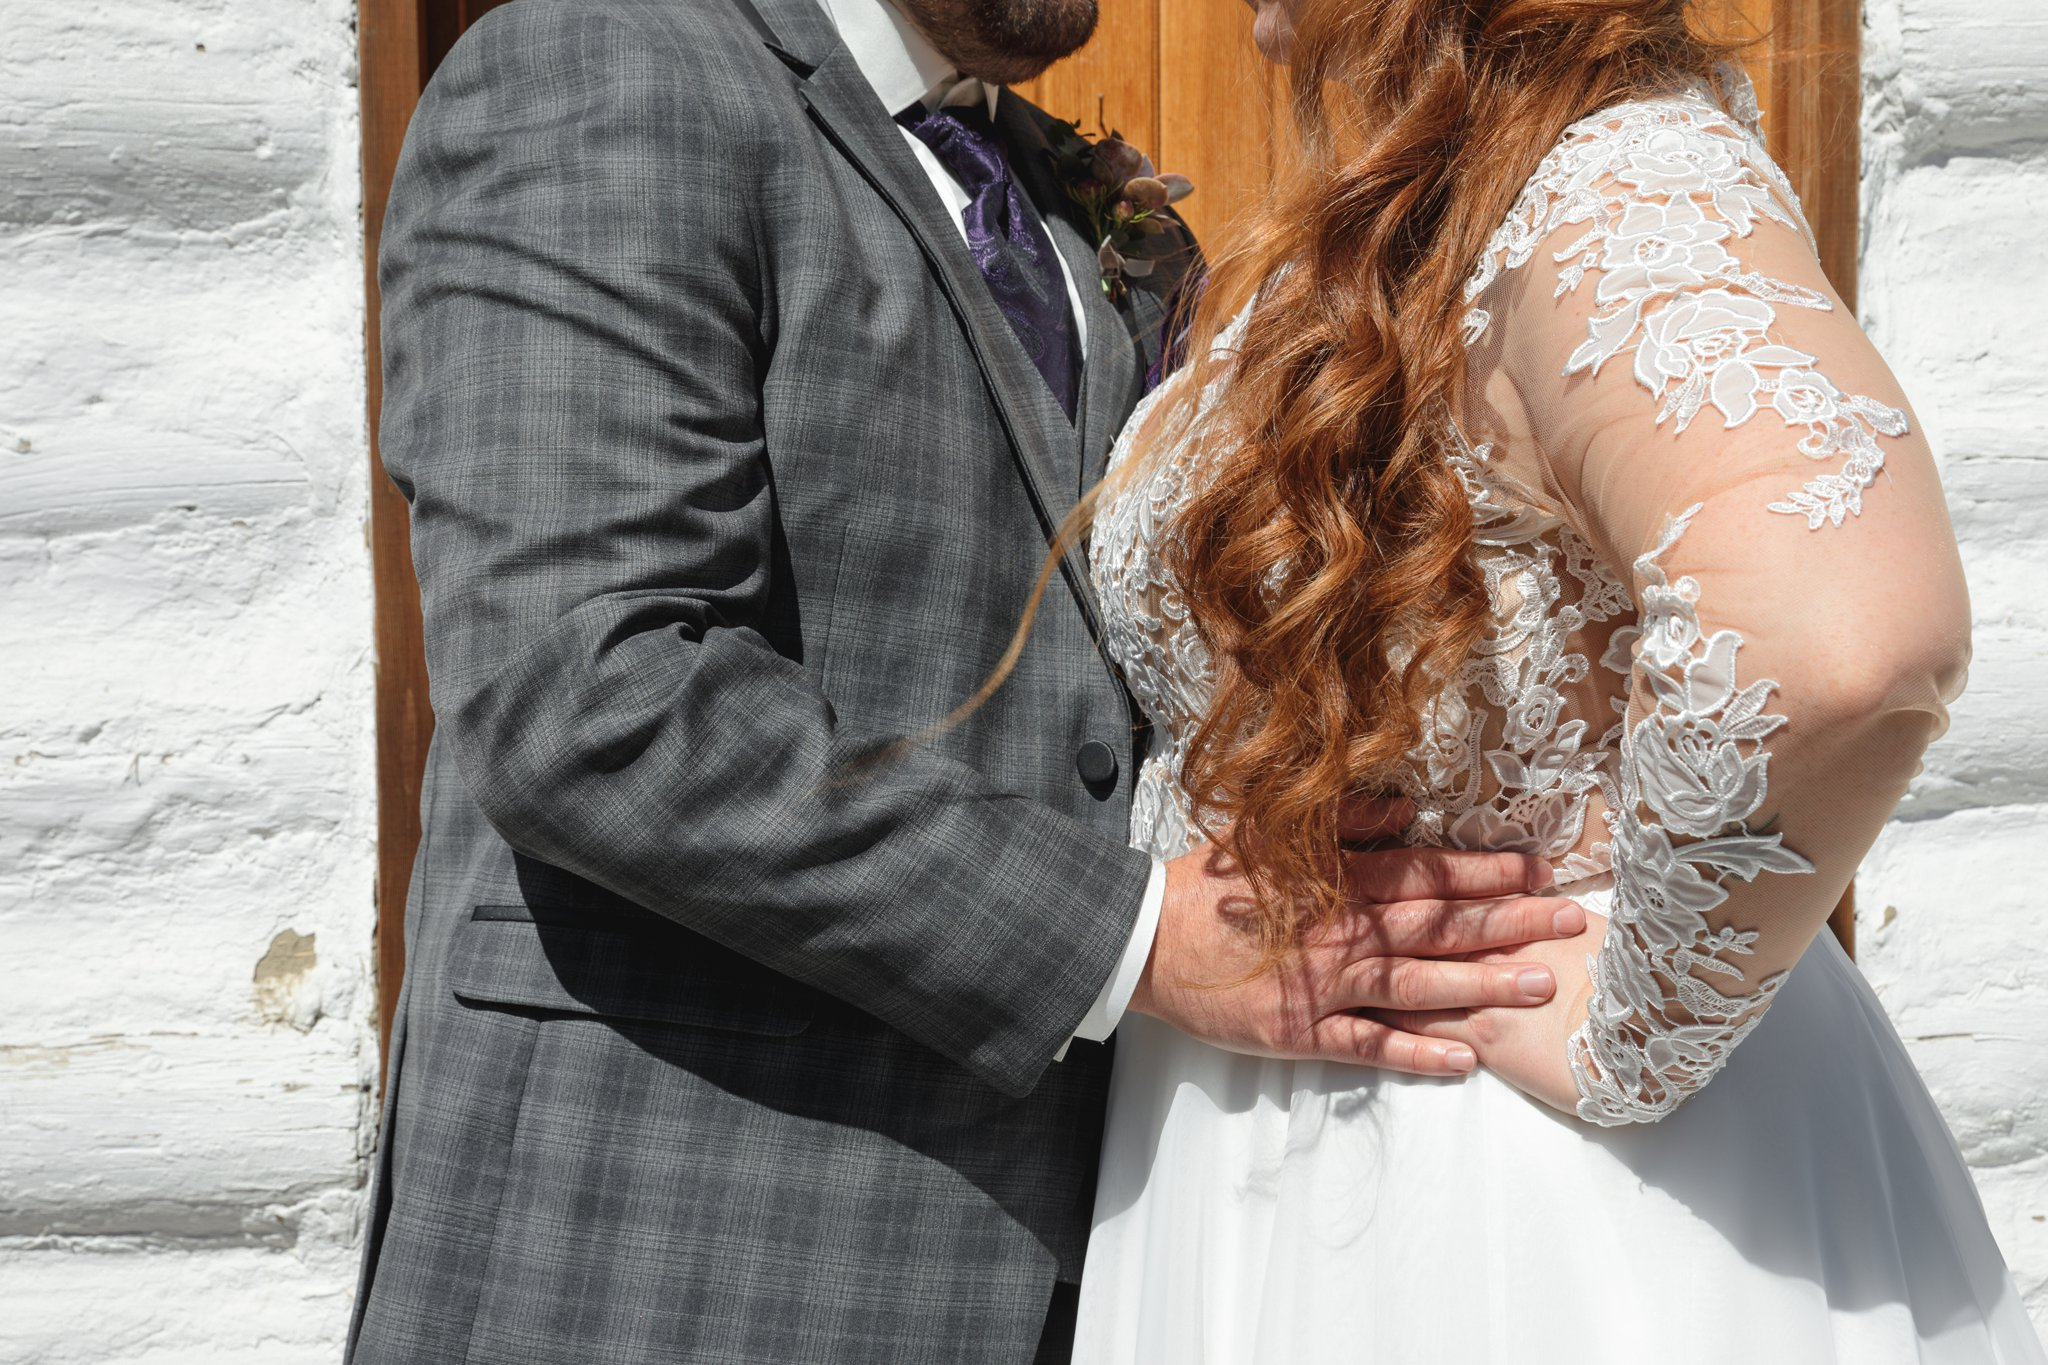 AshleyDaphnePhotography Calgary Wedding Photographer Rouge Inglewood Bride Groom Photography_0076.jpg